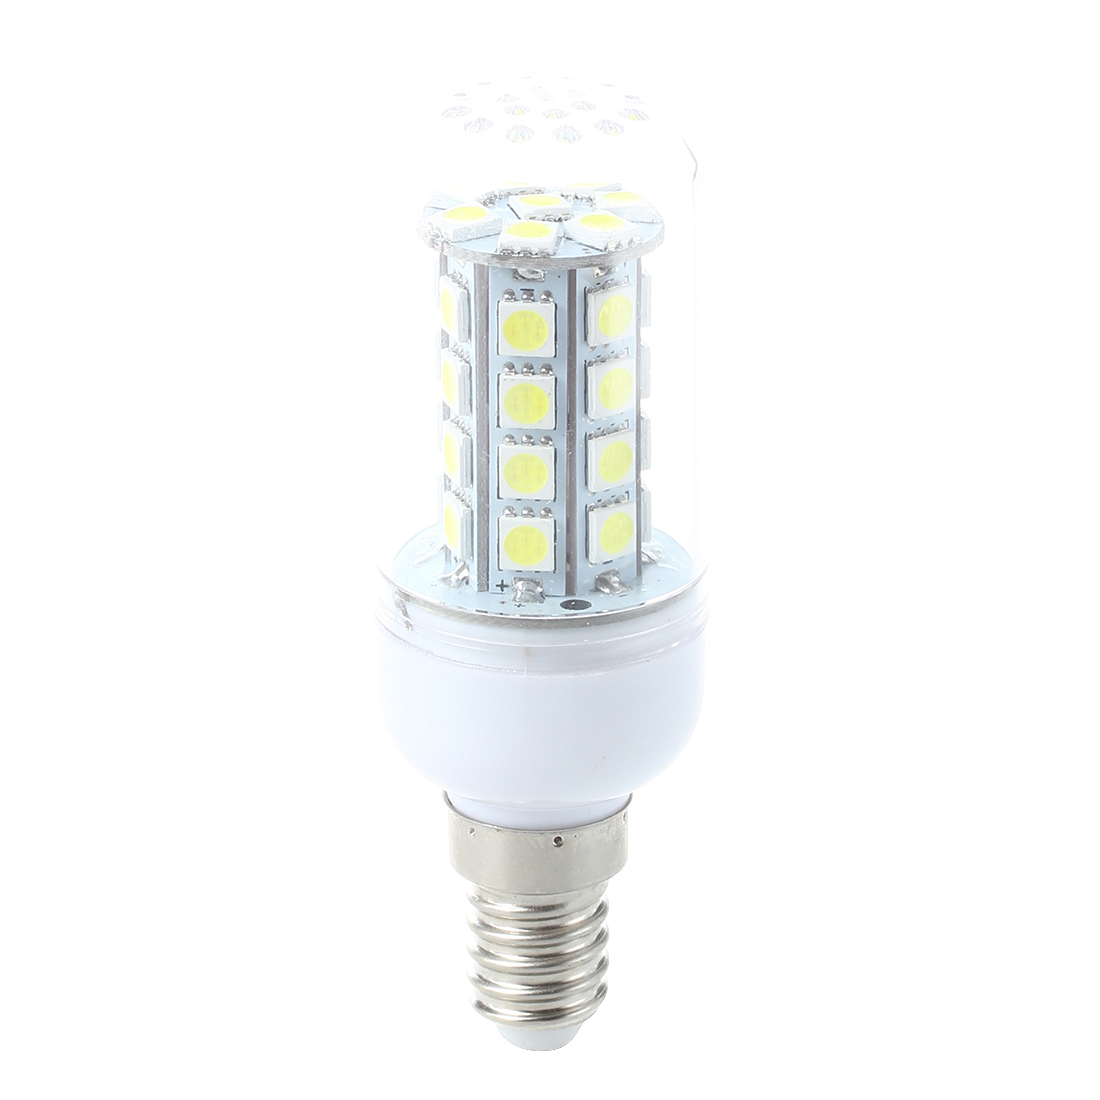 Lights & Lighting Obedient 7w E14 Corn Bulb Lamp Spot 5050 Smd 36 Led White 6500k 320lm Dropshipping Comfortable And Easy To Wear